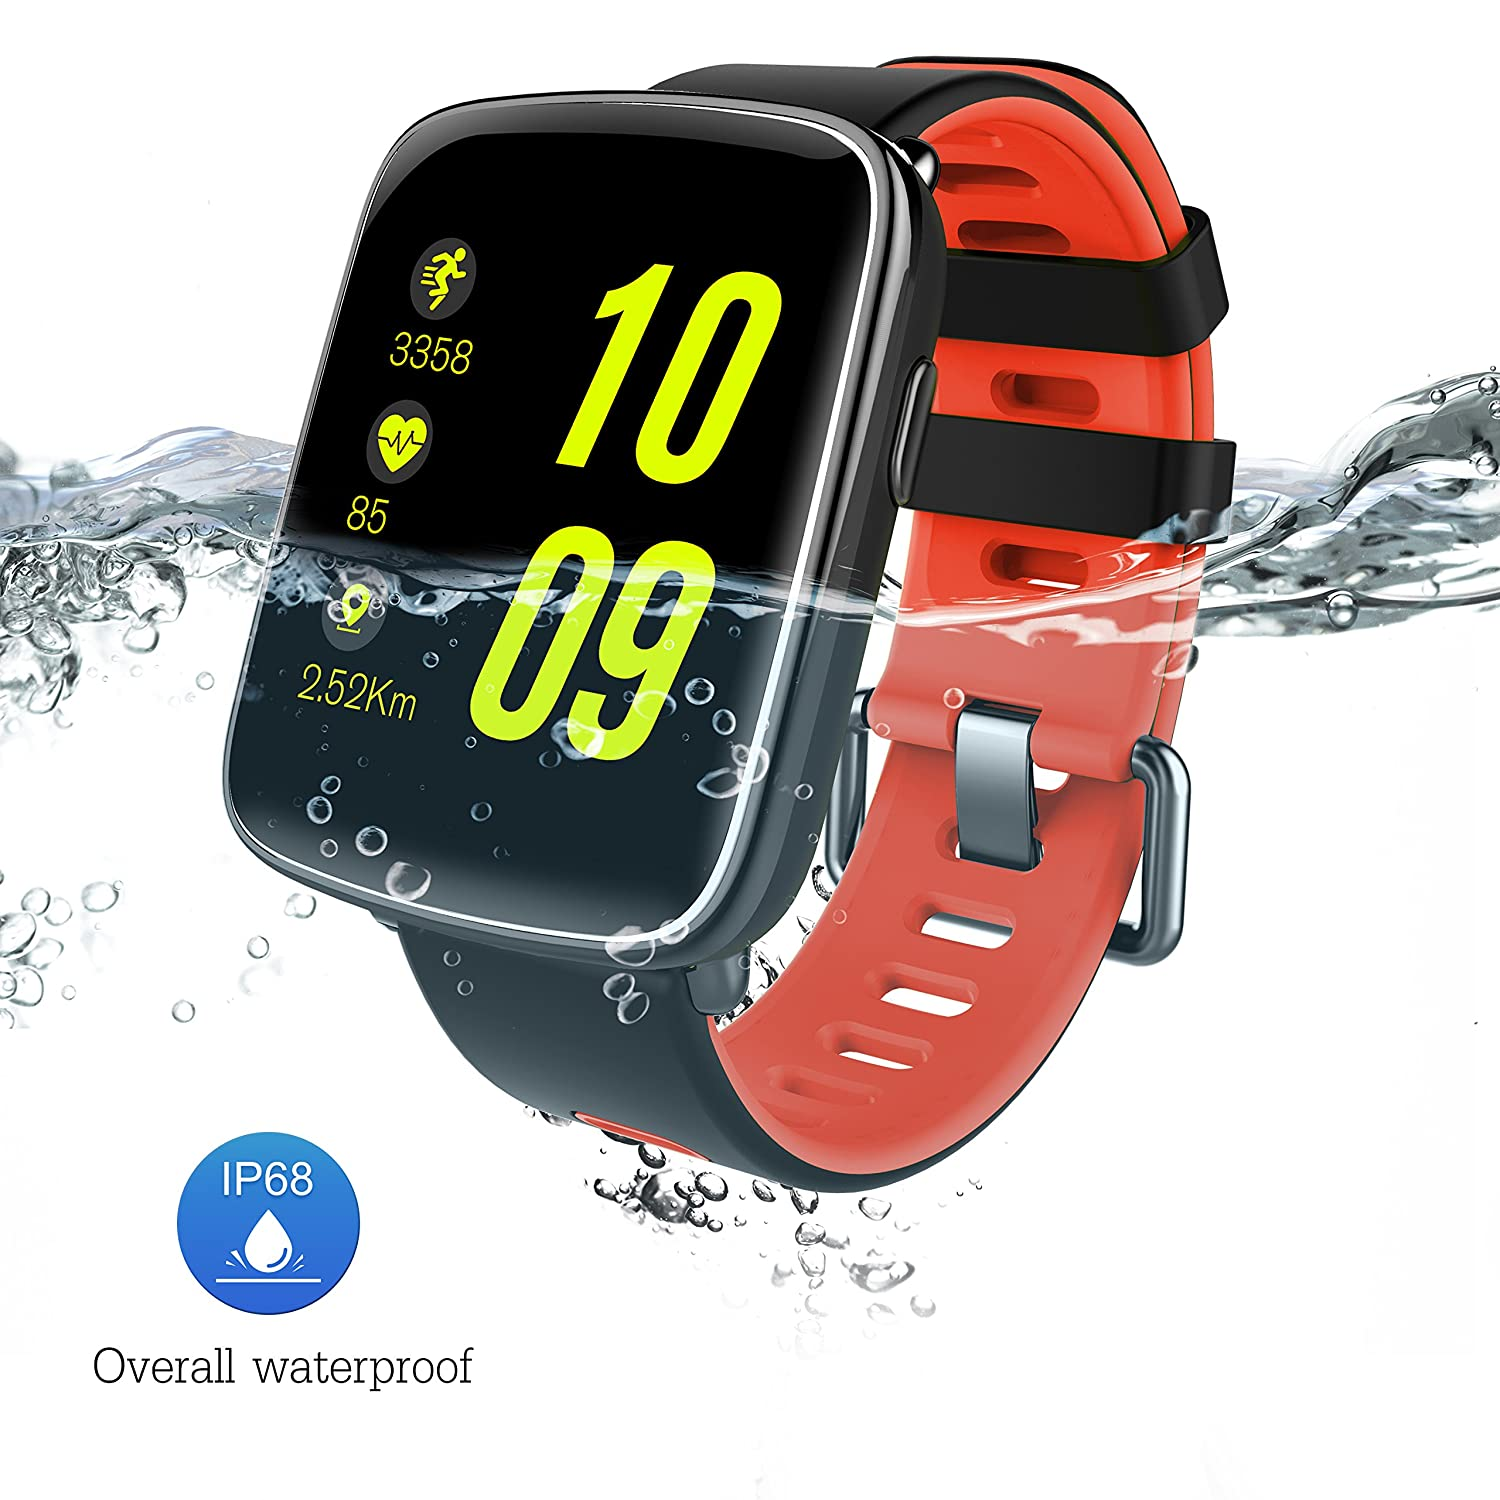 Waterproof Fitness Smart Watch with Notification Synchronization, Heart Rate Monitor, Sleep Monitor, Pedometer for iOS and Android Smartphones ...